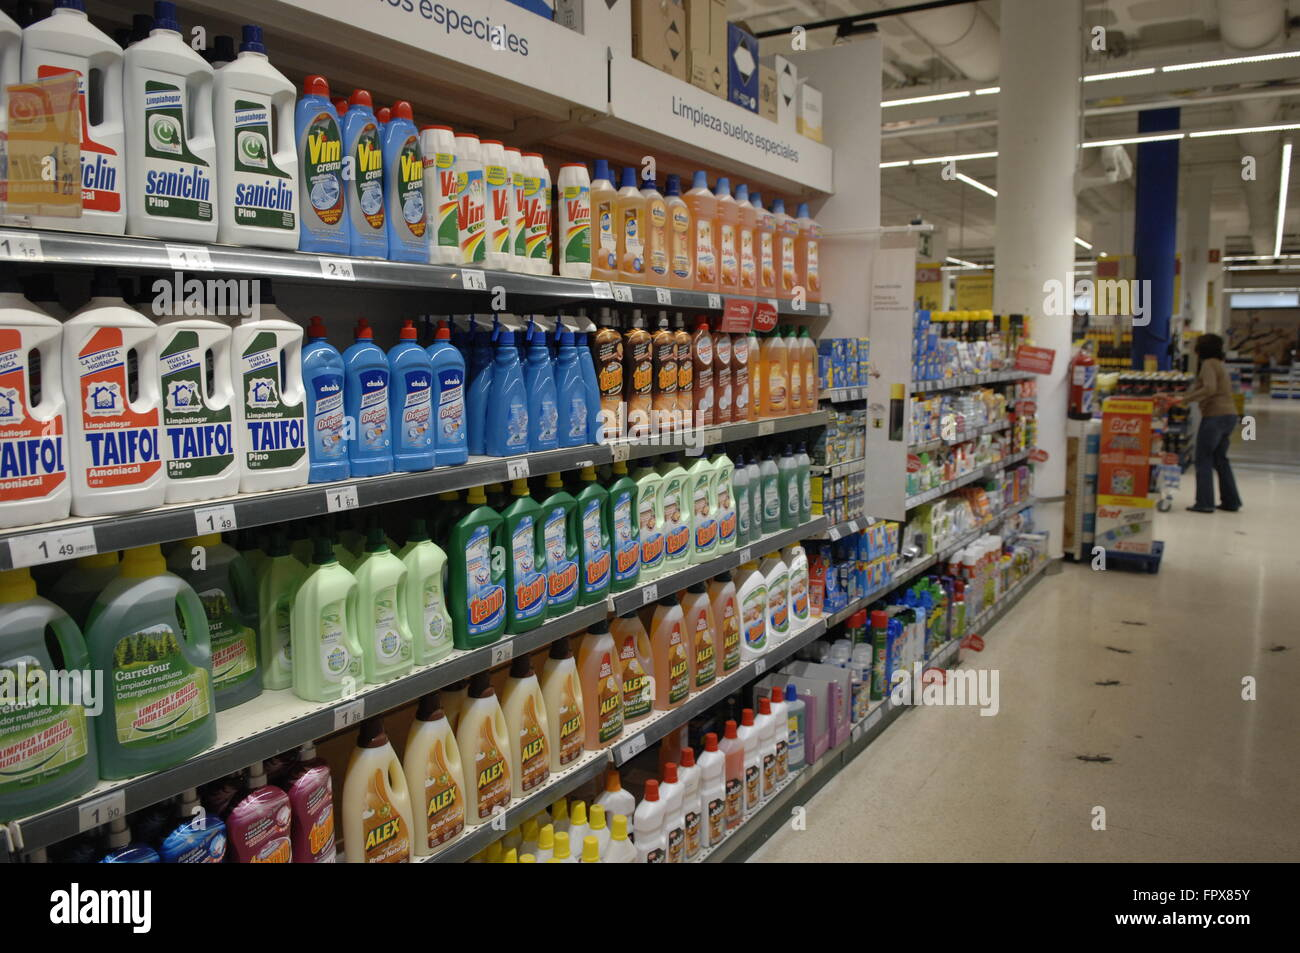 May 09, · Online shopping for groceries and household goods is a growth opportunity for retailers and grocers that have seen their market shares increasingly captured by .